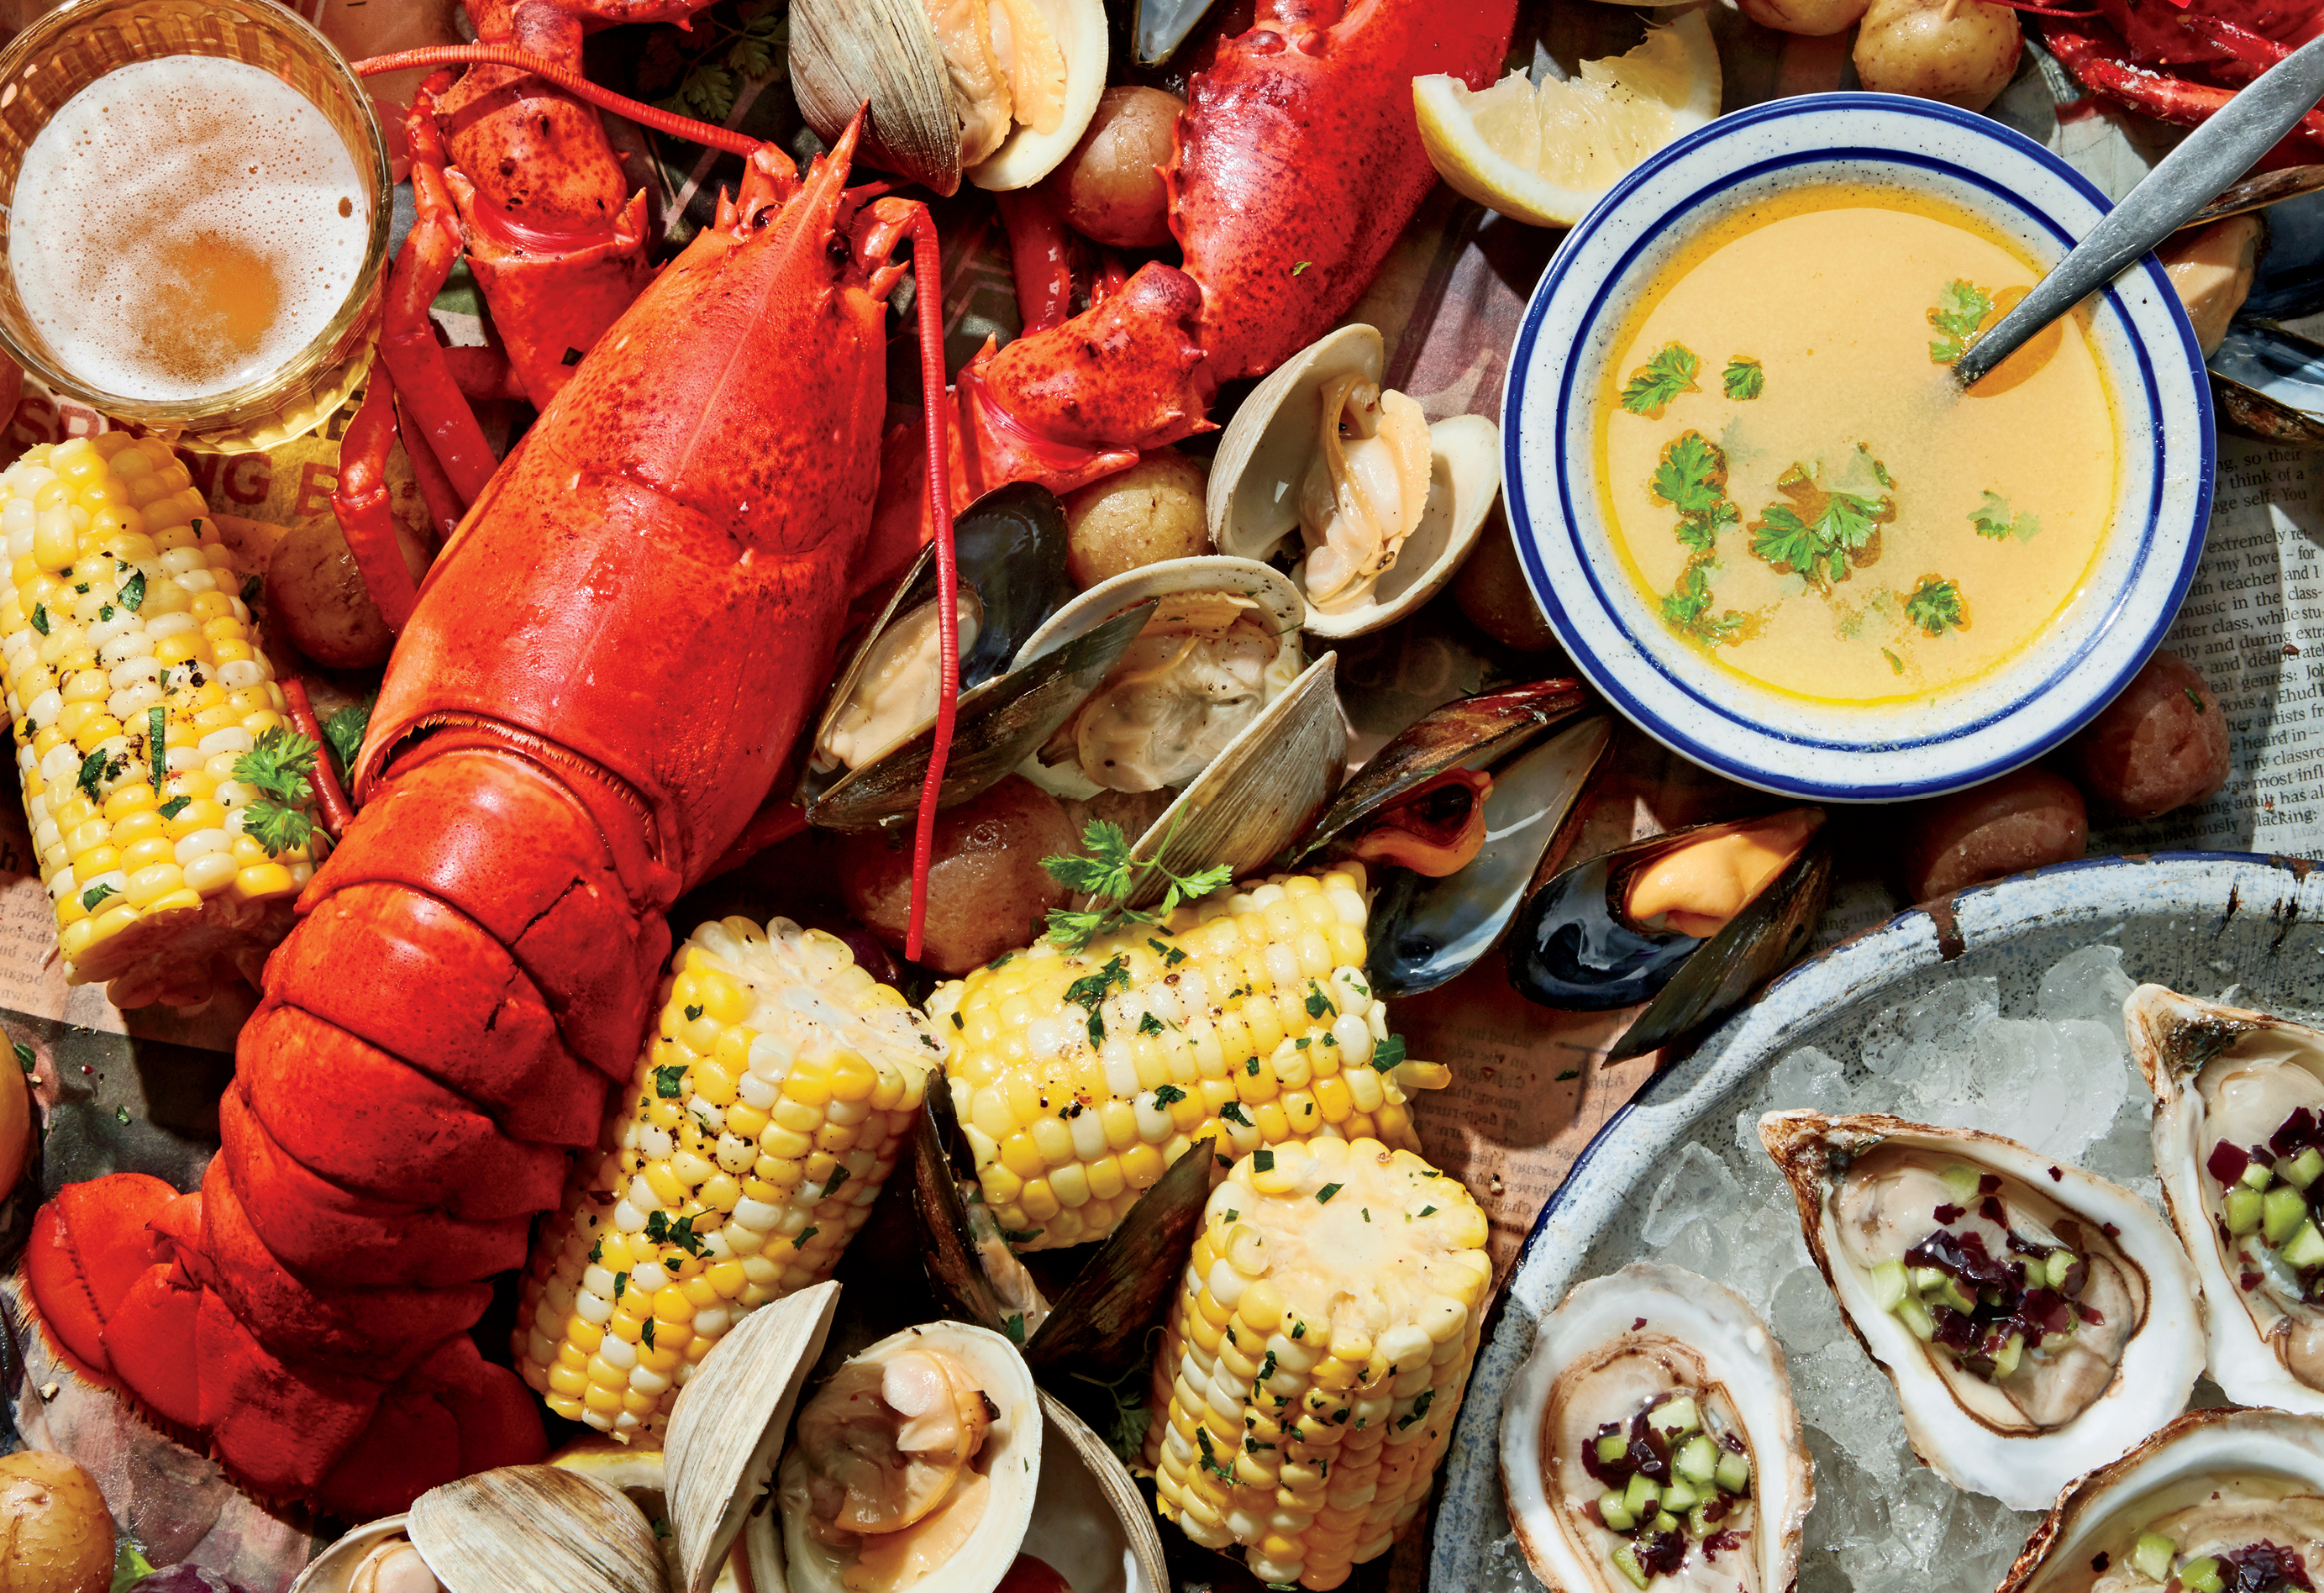 Lobster, clam, mussels, corn cobs, potatoes and beer on top of newspaper